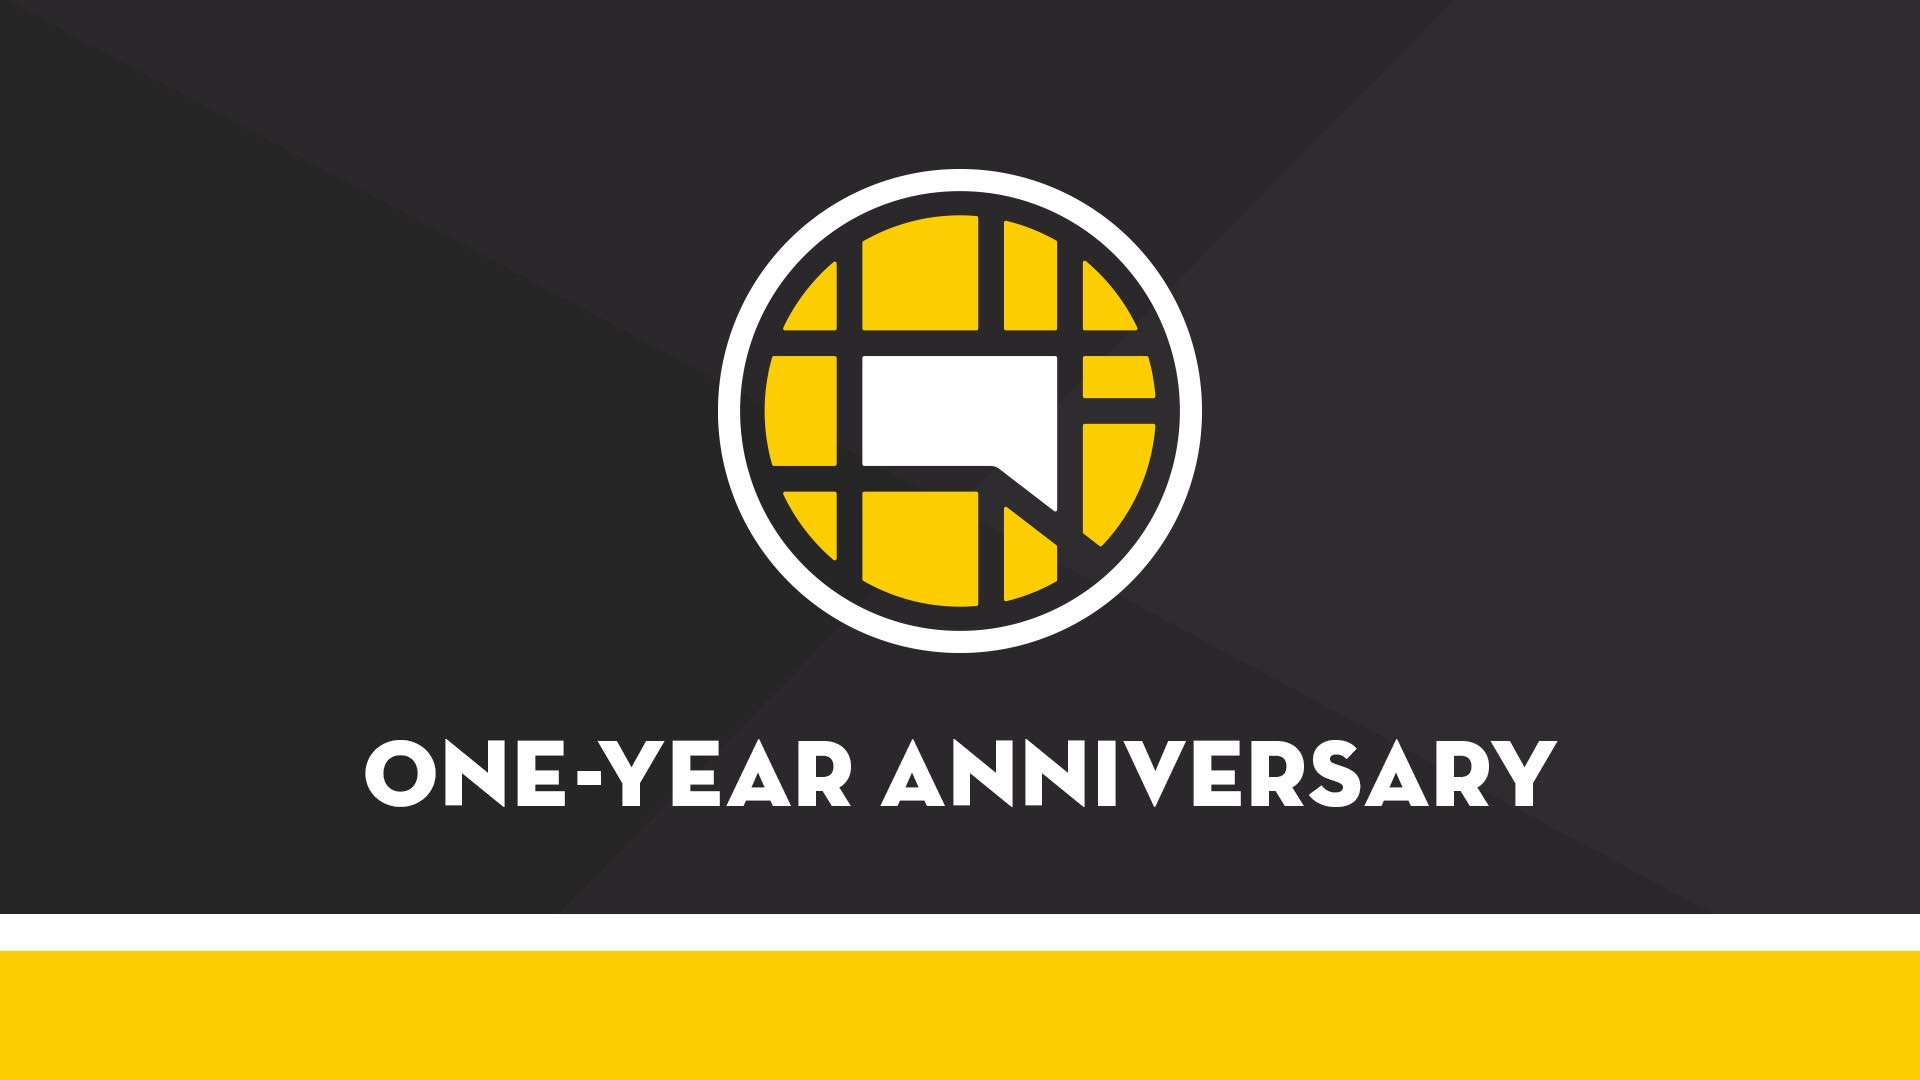 One-Year Anniversary